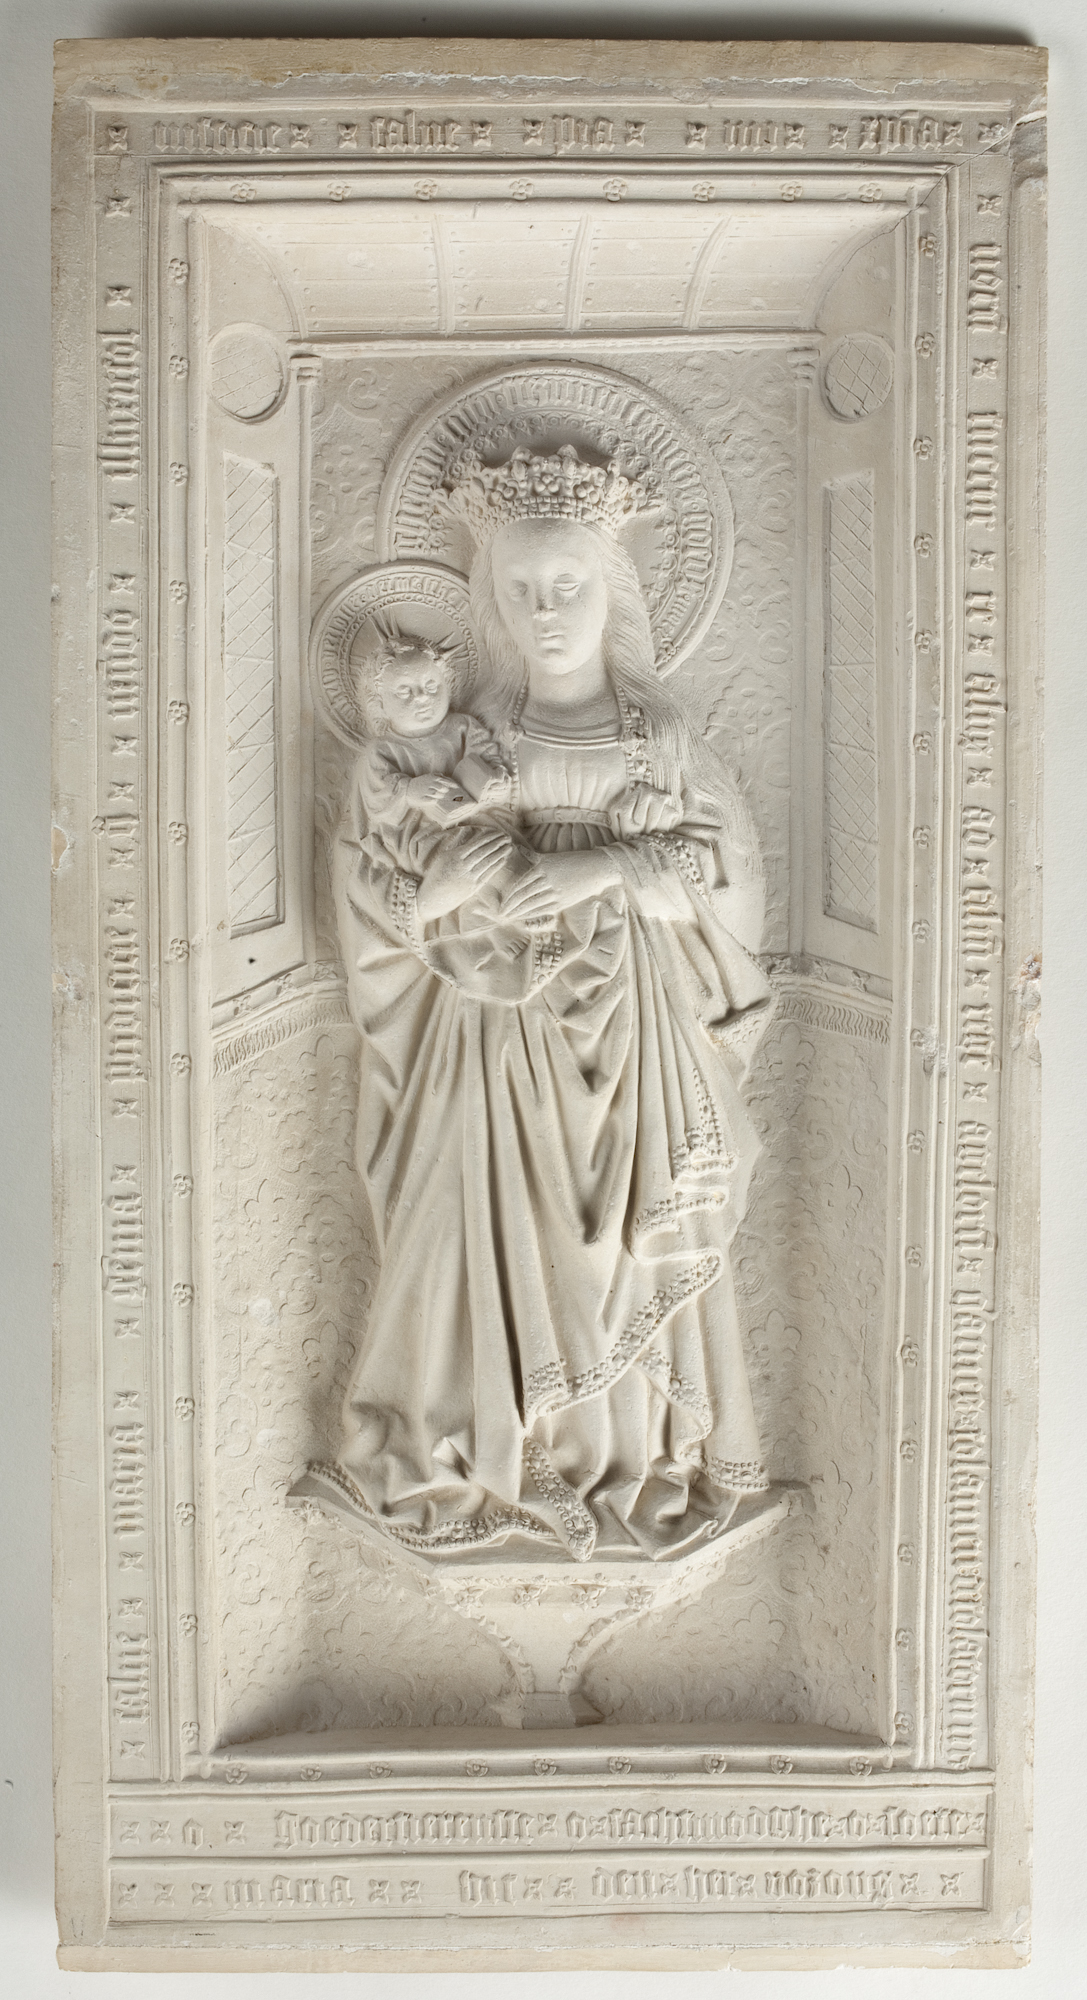 """""""Relief with the Virgin and Child (The Virgin of Zoeterwoude),"""" 2nd half of 15th century, by Unknown artist from Utrecht. Pipe clay, 16 13/16 inches by 8 11/16 inches by 1 inch, Museum Catharijneconvent. (Courtesy of The Frick Collection)"""